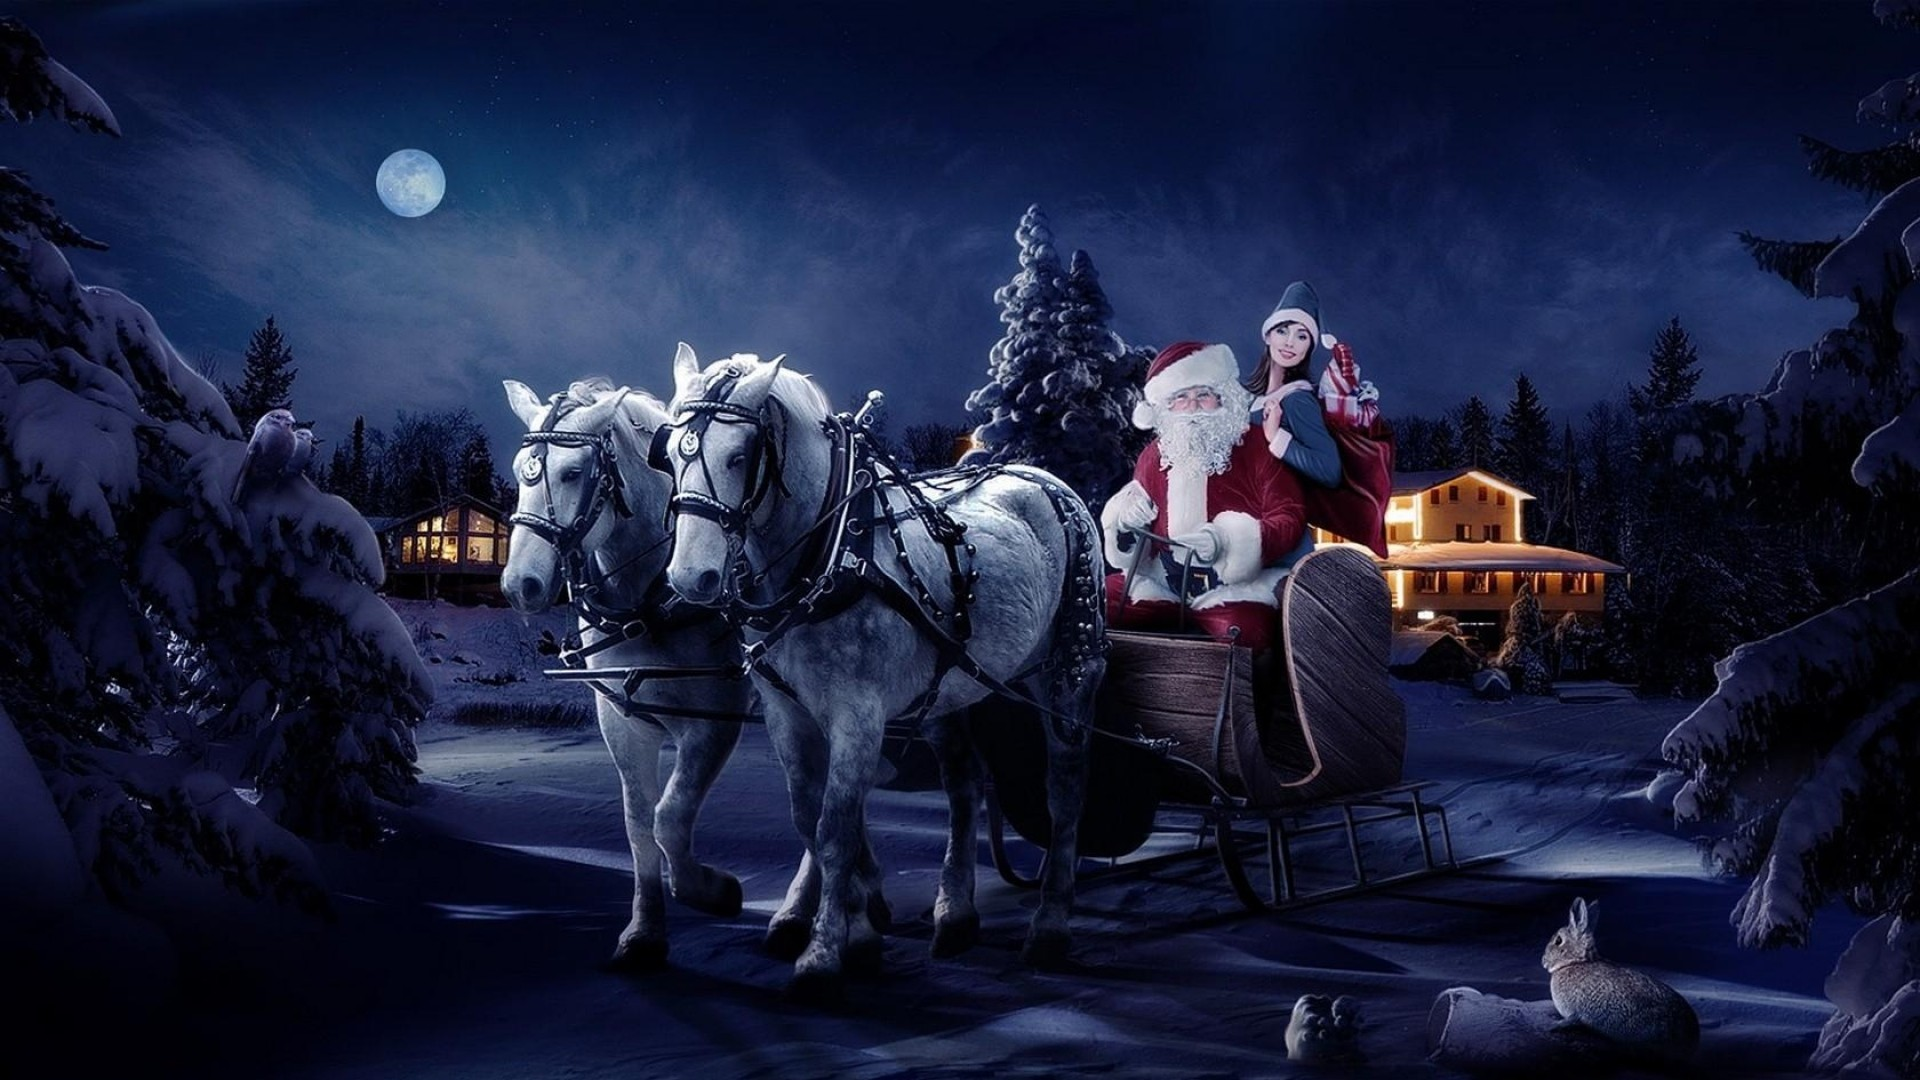 Res: 1920x1080, Get the latest santa claus, sleigh, girl news, pictures and videos and  learn all about santa claus, sleigh, girl from wallpapers4u.org, your  wallpaper news ...